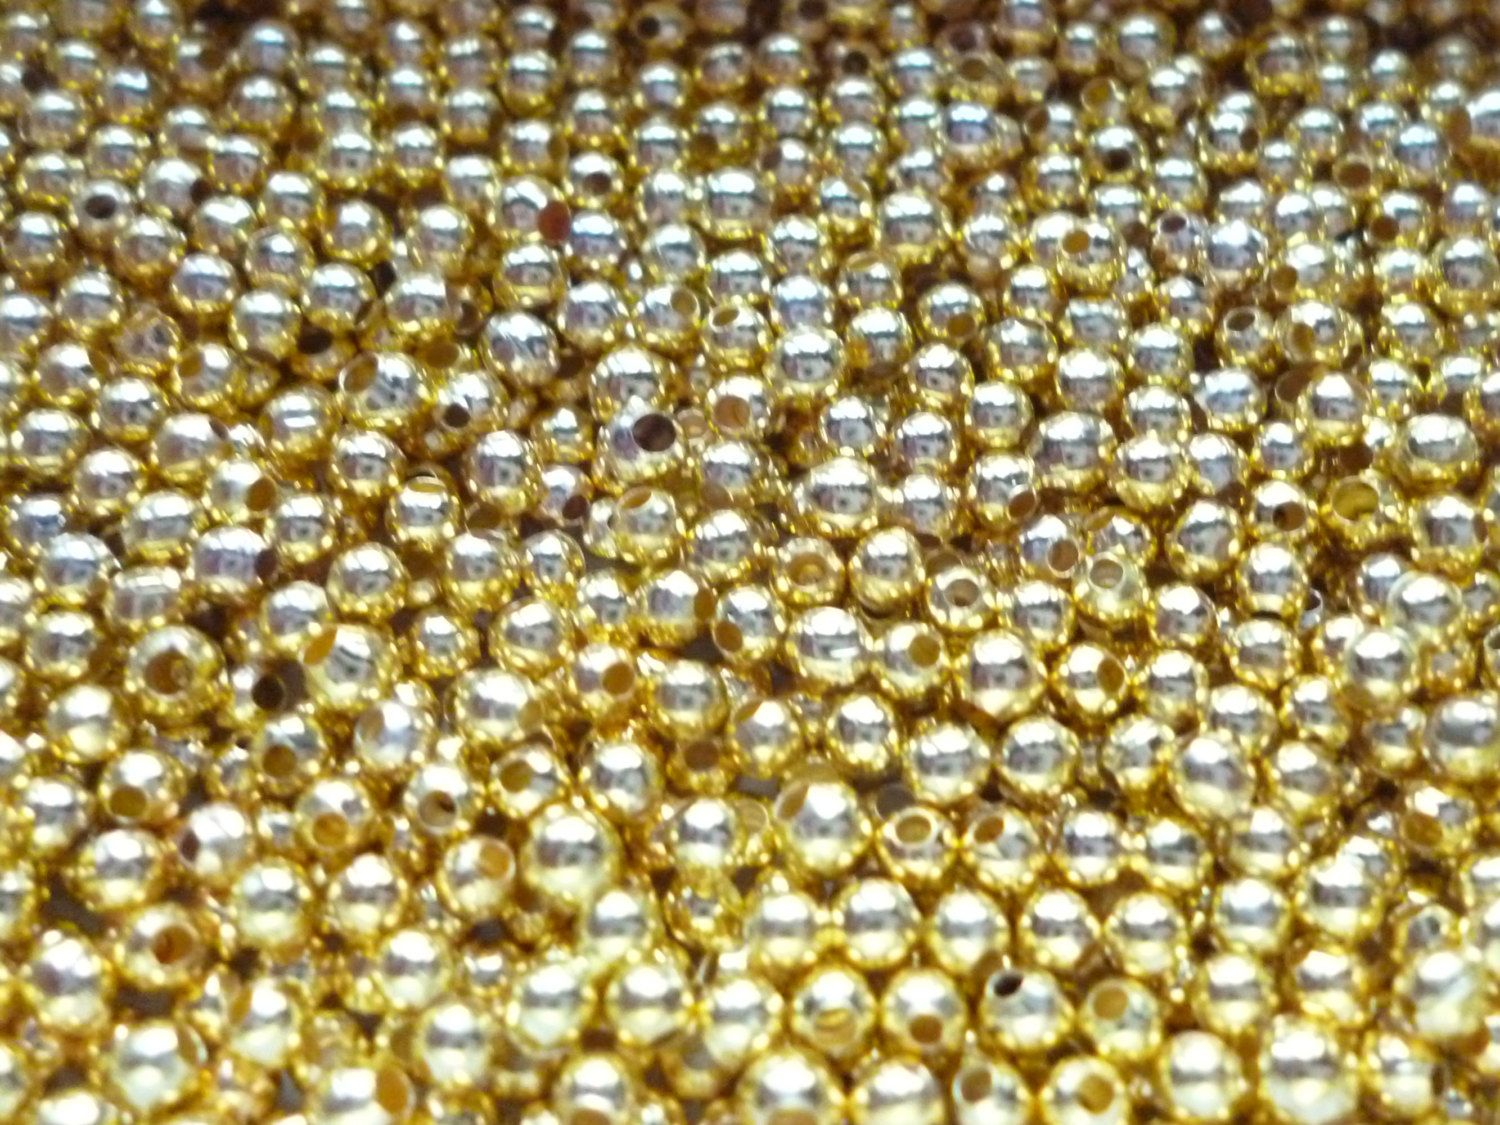 300+Gold+Plated+Iron+Metal+Spacer+Beads+by+BeadsDelightsShop,+£0.99